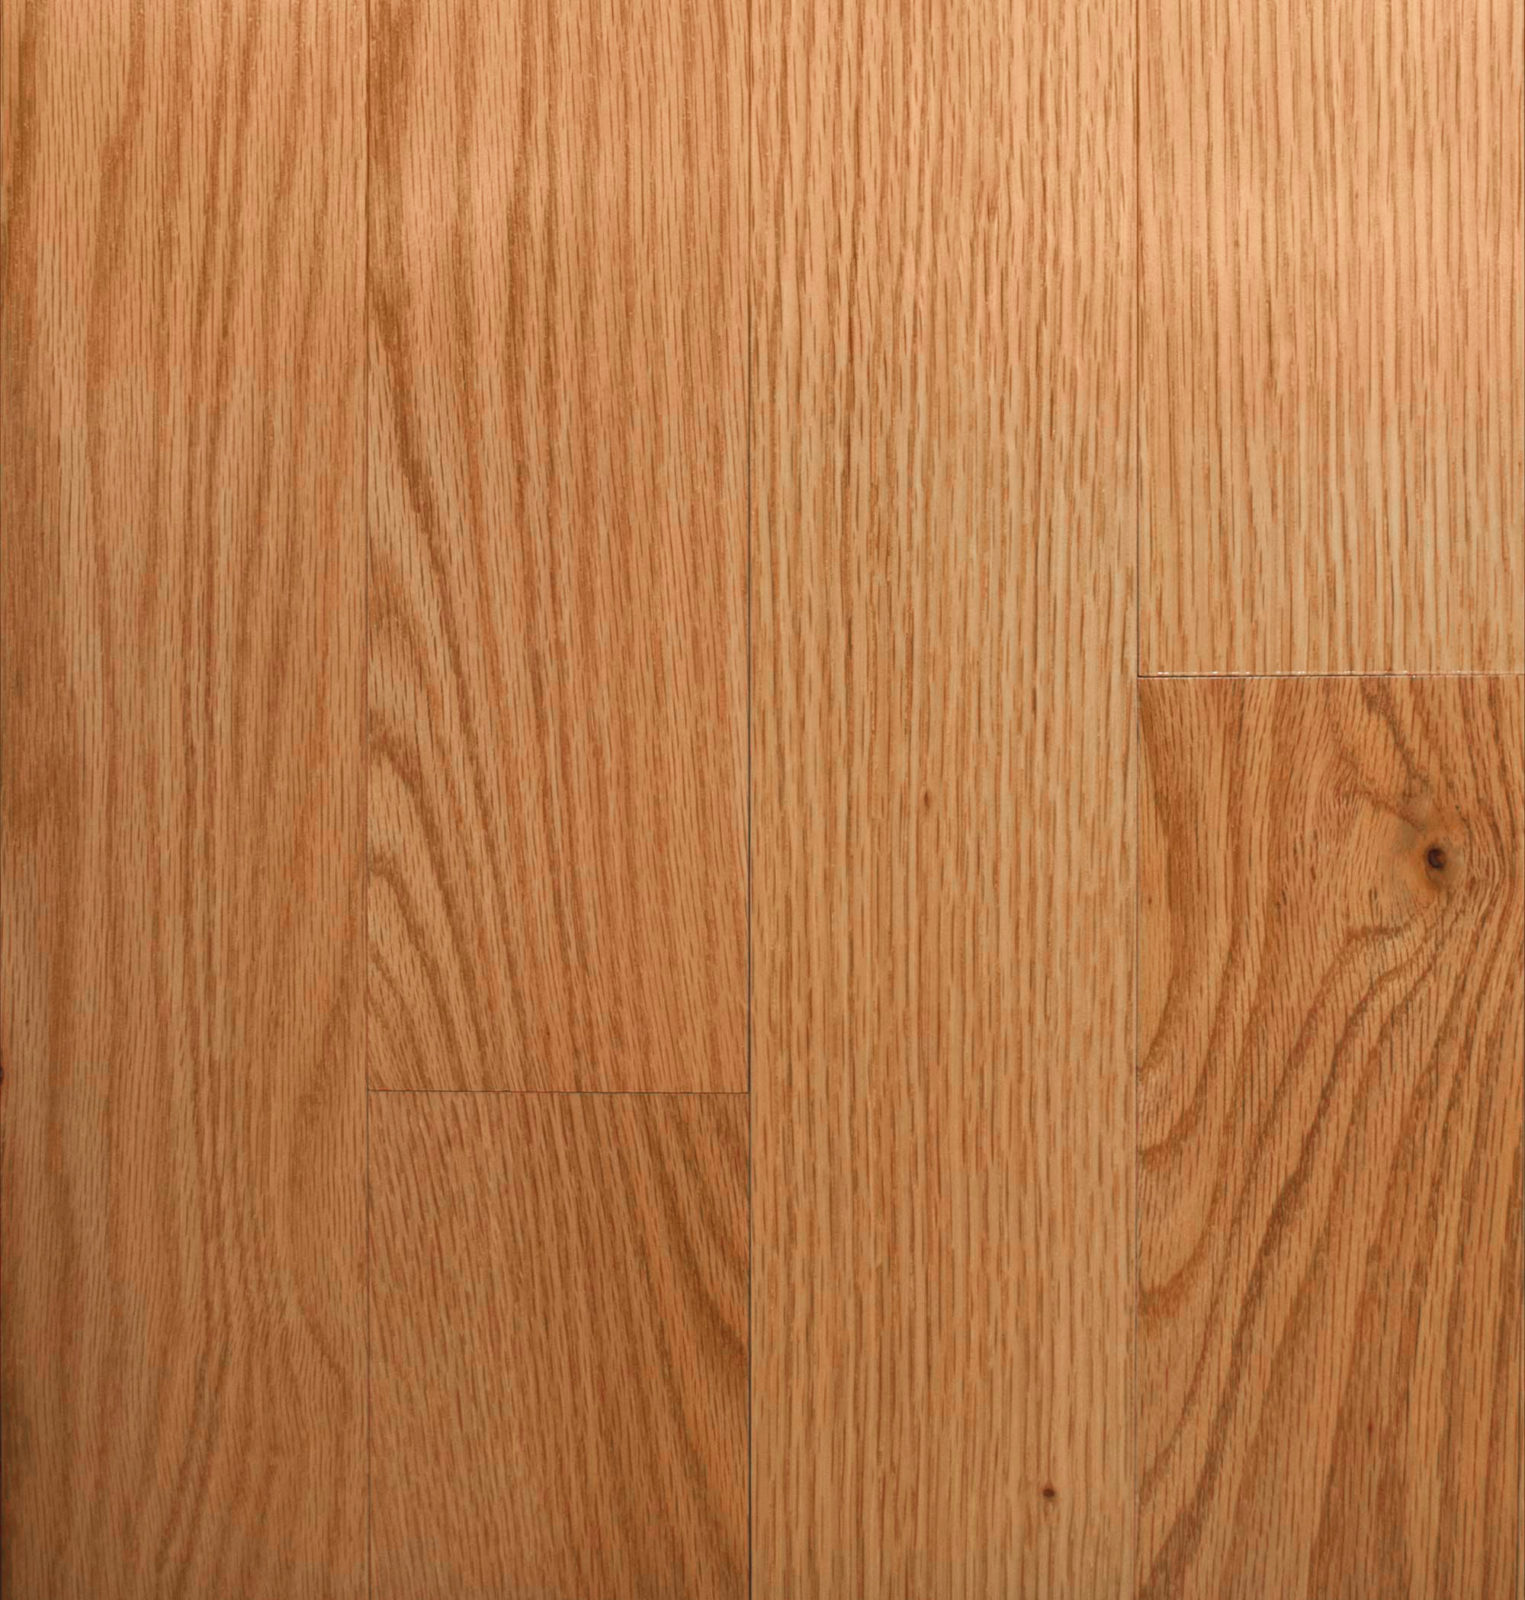 3 1 4 x 3 4 mohawk red oak natural schillings for Red oak hardwood flooring